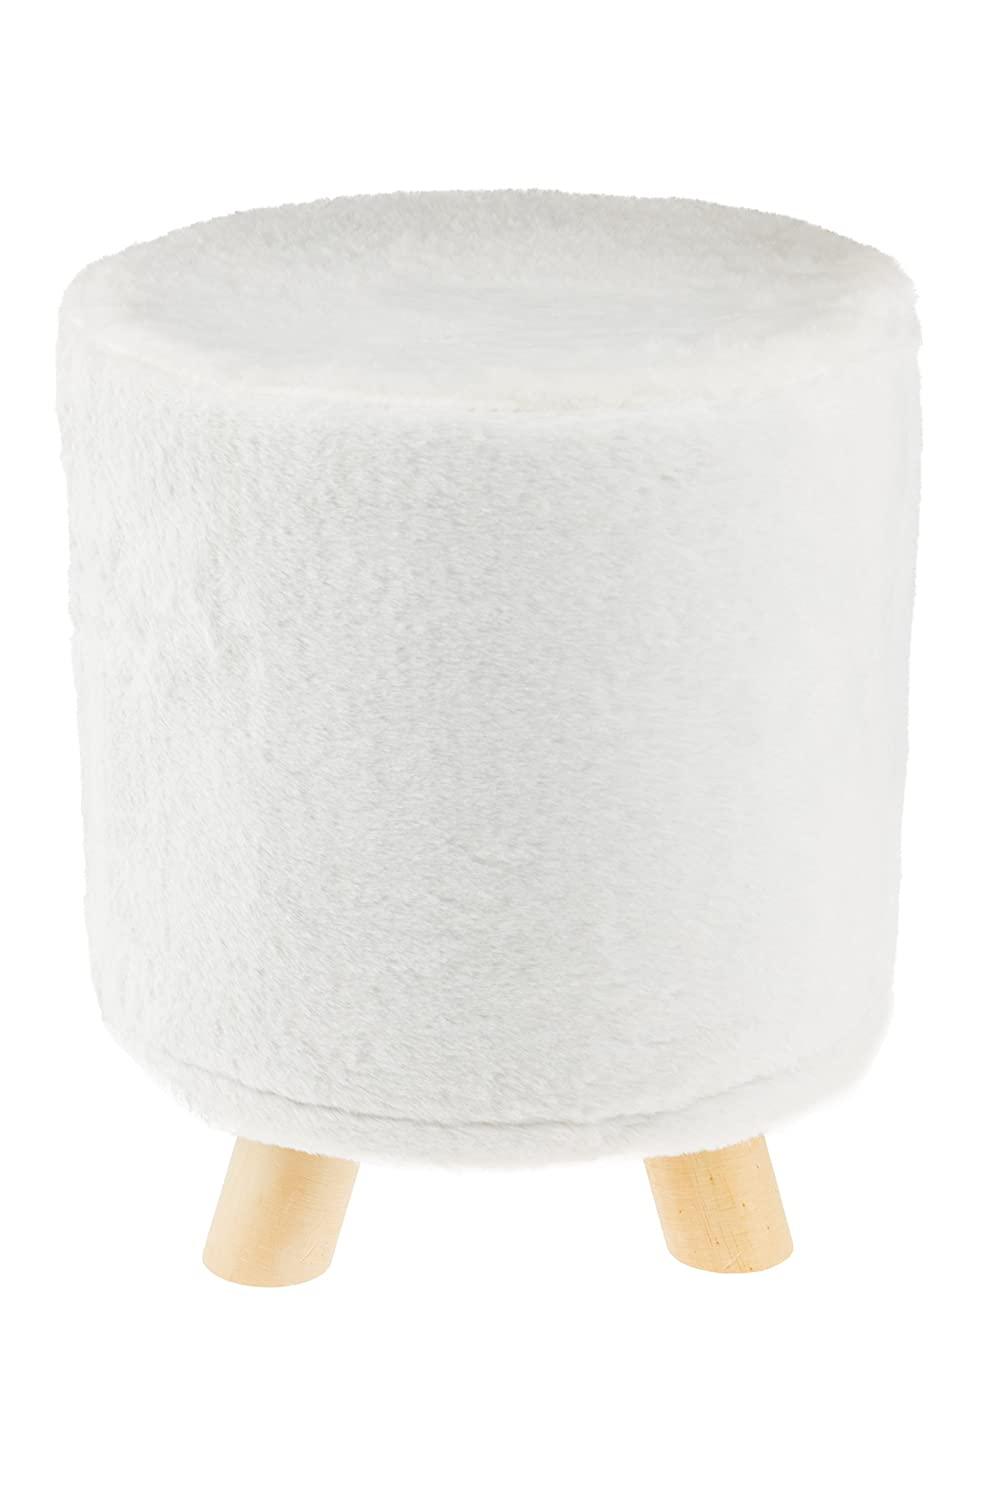 Miraculous Premium Furry White Round Foot Stool Real Wood Legs Stands 12X12X13 Inches Gmtry Best Dining Table And Chair Ideas Images Gmtryco